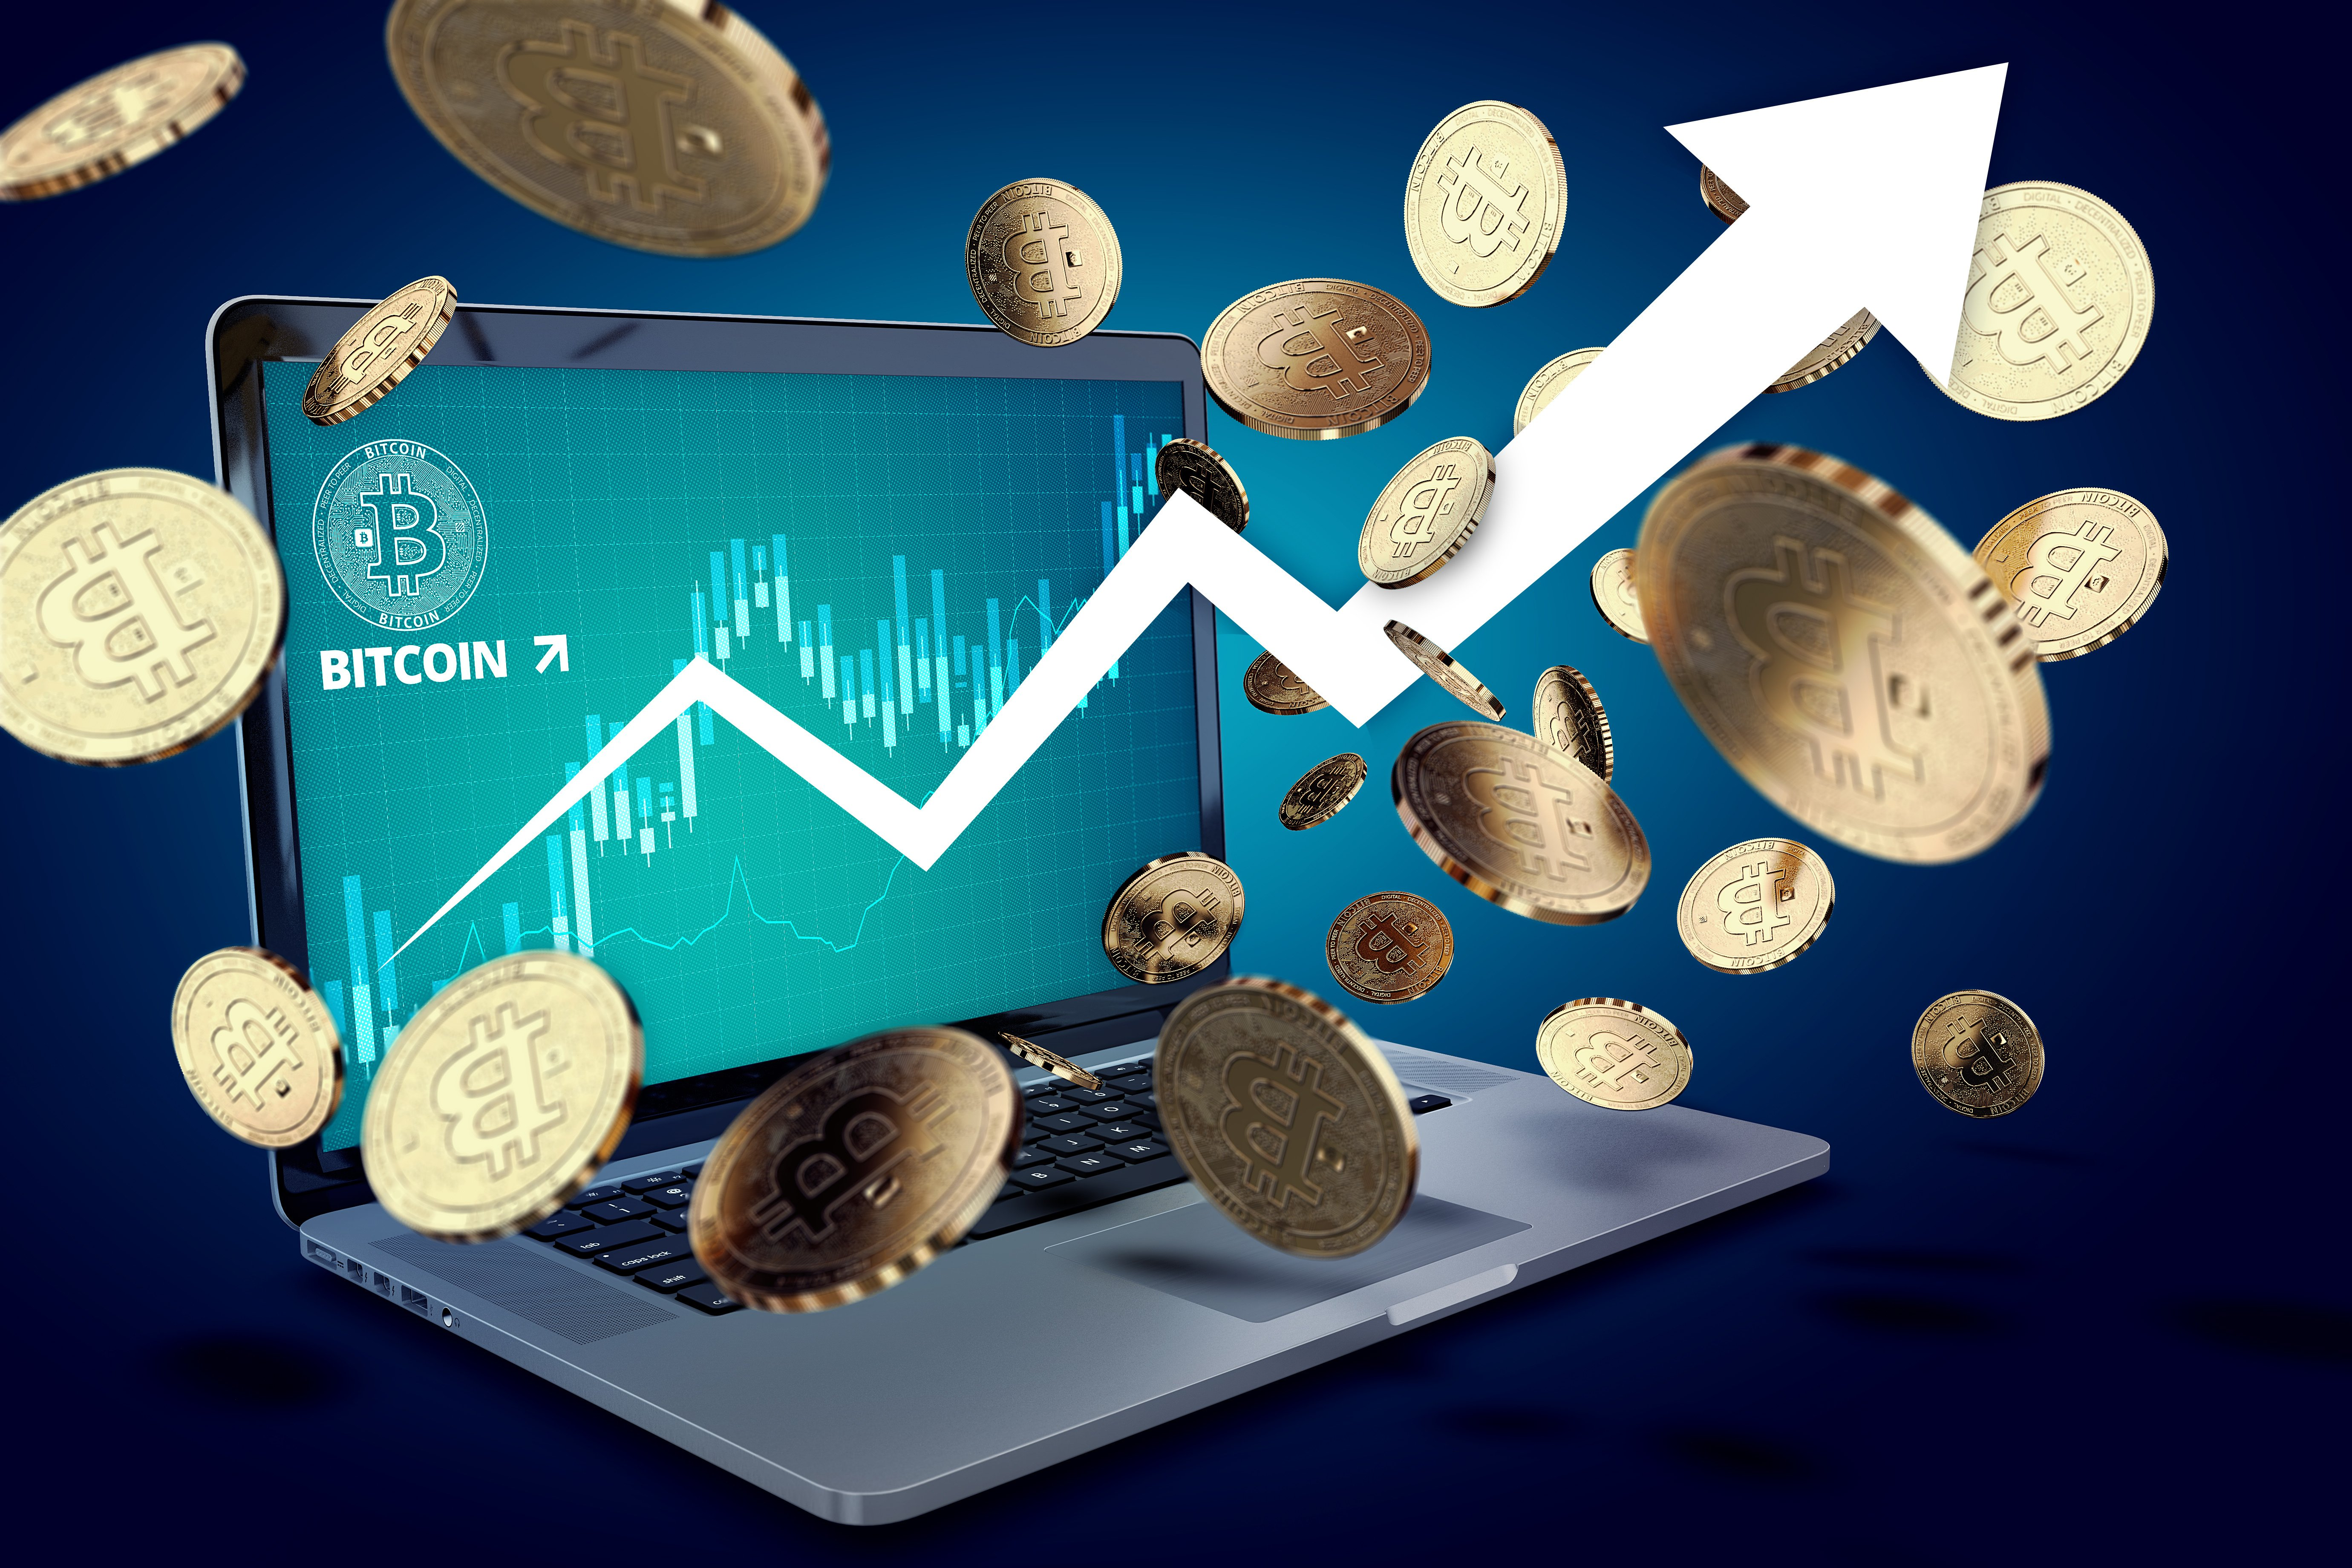 Floating Bitcoin coins against laptop with BTC success chart